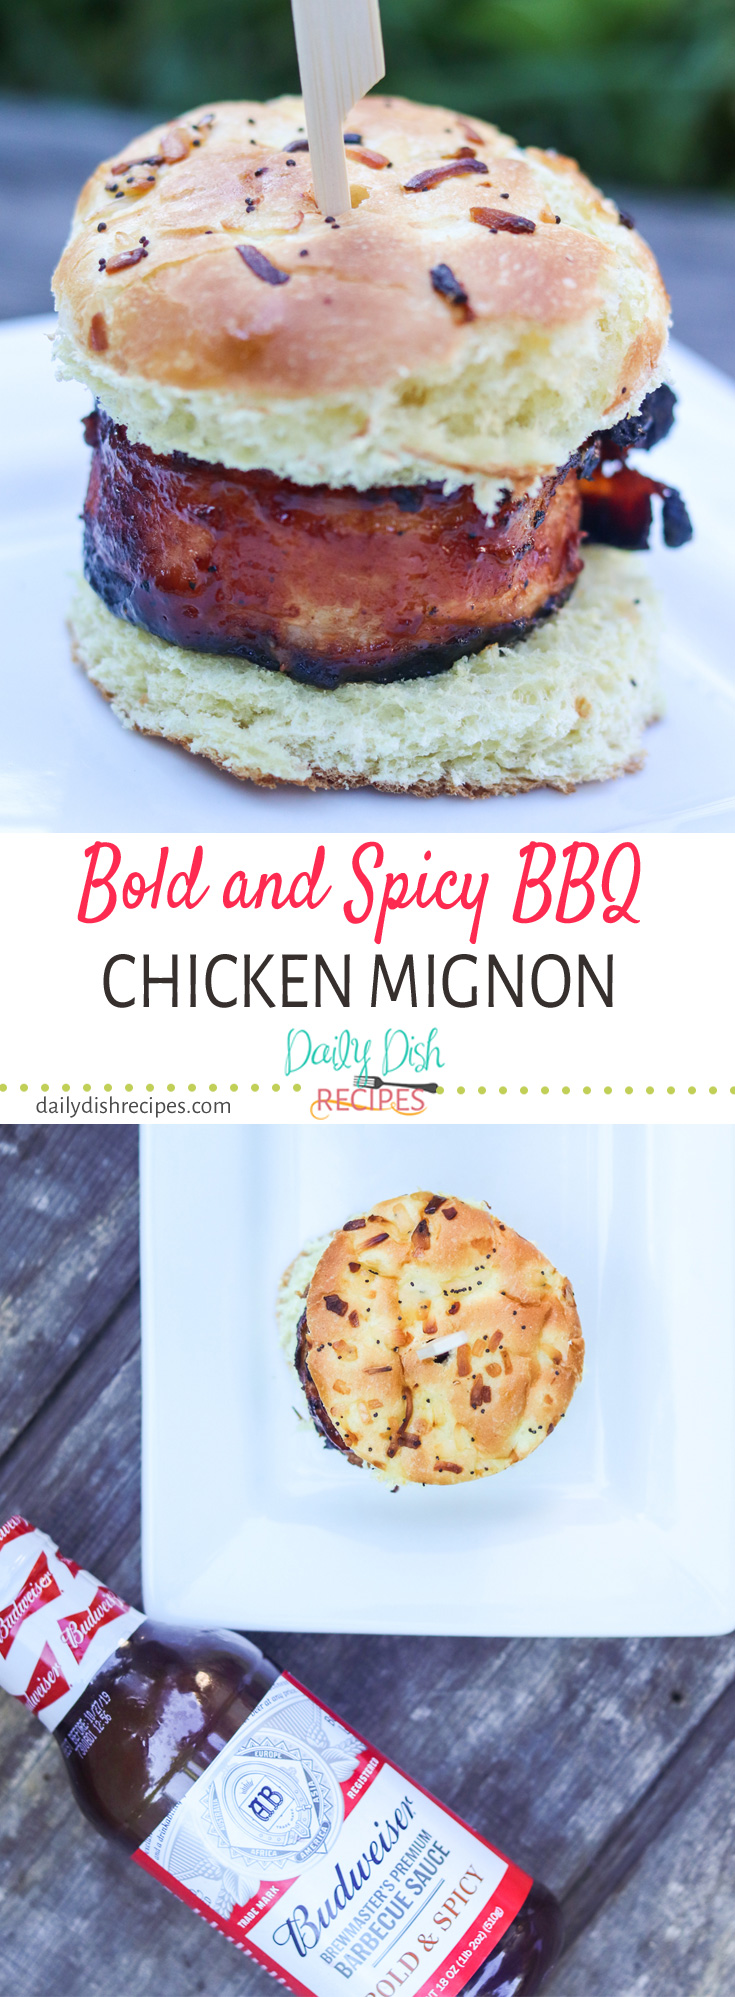 Bacon wrapped chicken, smothered in full flavor Bold & Spicy BBQ sauce and then grilled to perfection.  Serve on an onion slider bun. This Bold and Spicy BBQ Chicken Mignon is a fun addition to your summer grilling season.